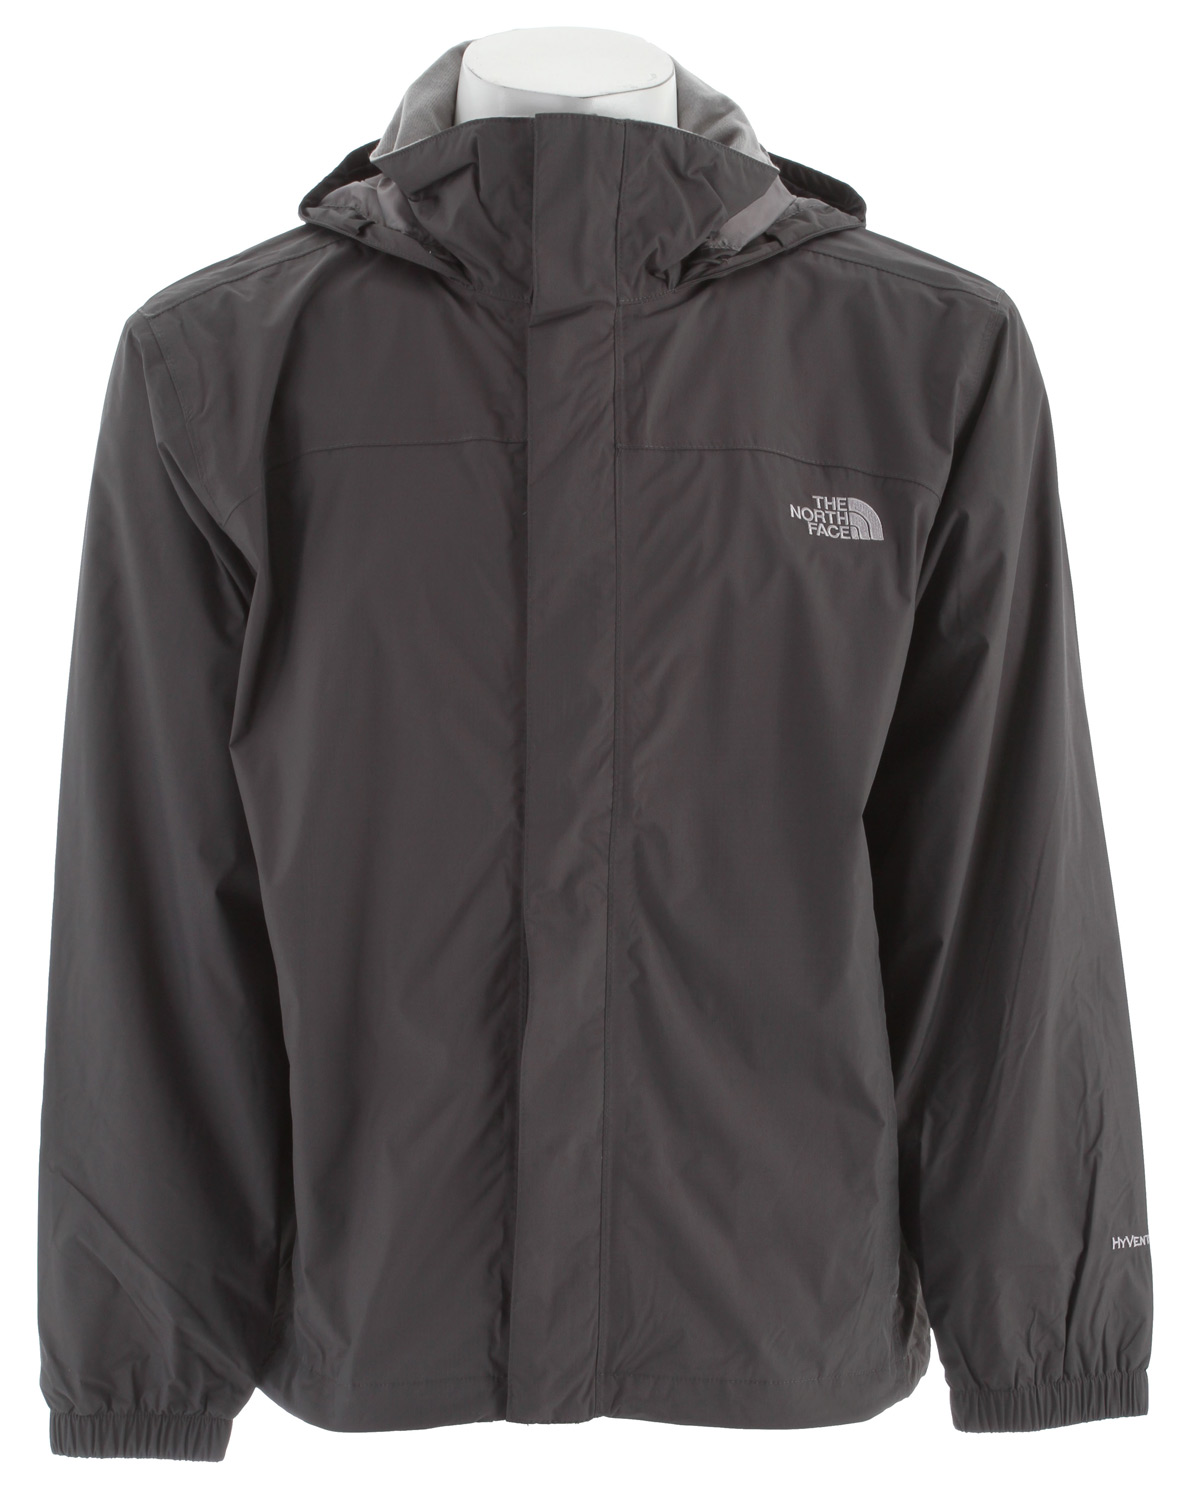 Mesh-lined, waterproof, breathable, seam-sealed jacket equipped for hard play in the worst weather. Key Features of the The North Face Resolve Jacket: Fabric: body: 70D 105 g/m2 (3.1 oz/yd2) nylon ripstop HyVent 2L Lining: mesh knit Standard fit Waterproof, breathable, seam sealed Mesh lined Brushed collar lining Adjustable hood stows in collar Center front zip and Velcro closure Two hand pockets Hem cinch-cord - $90.00